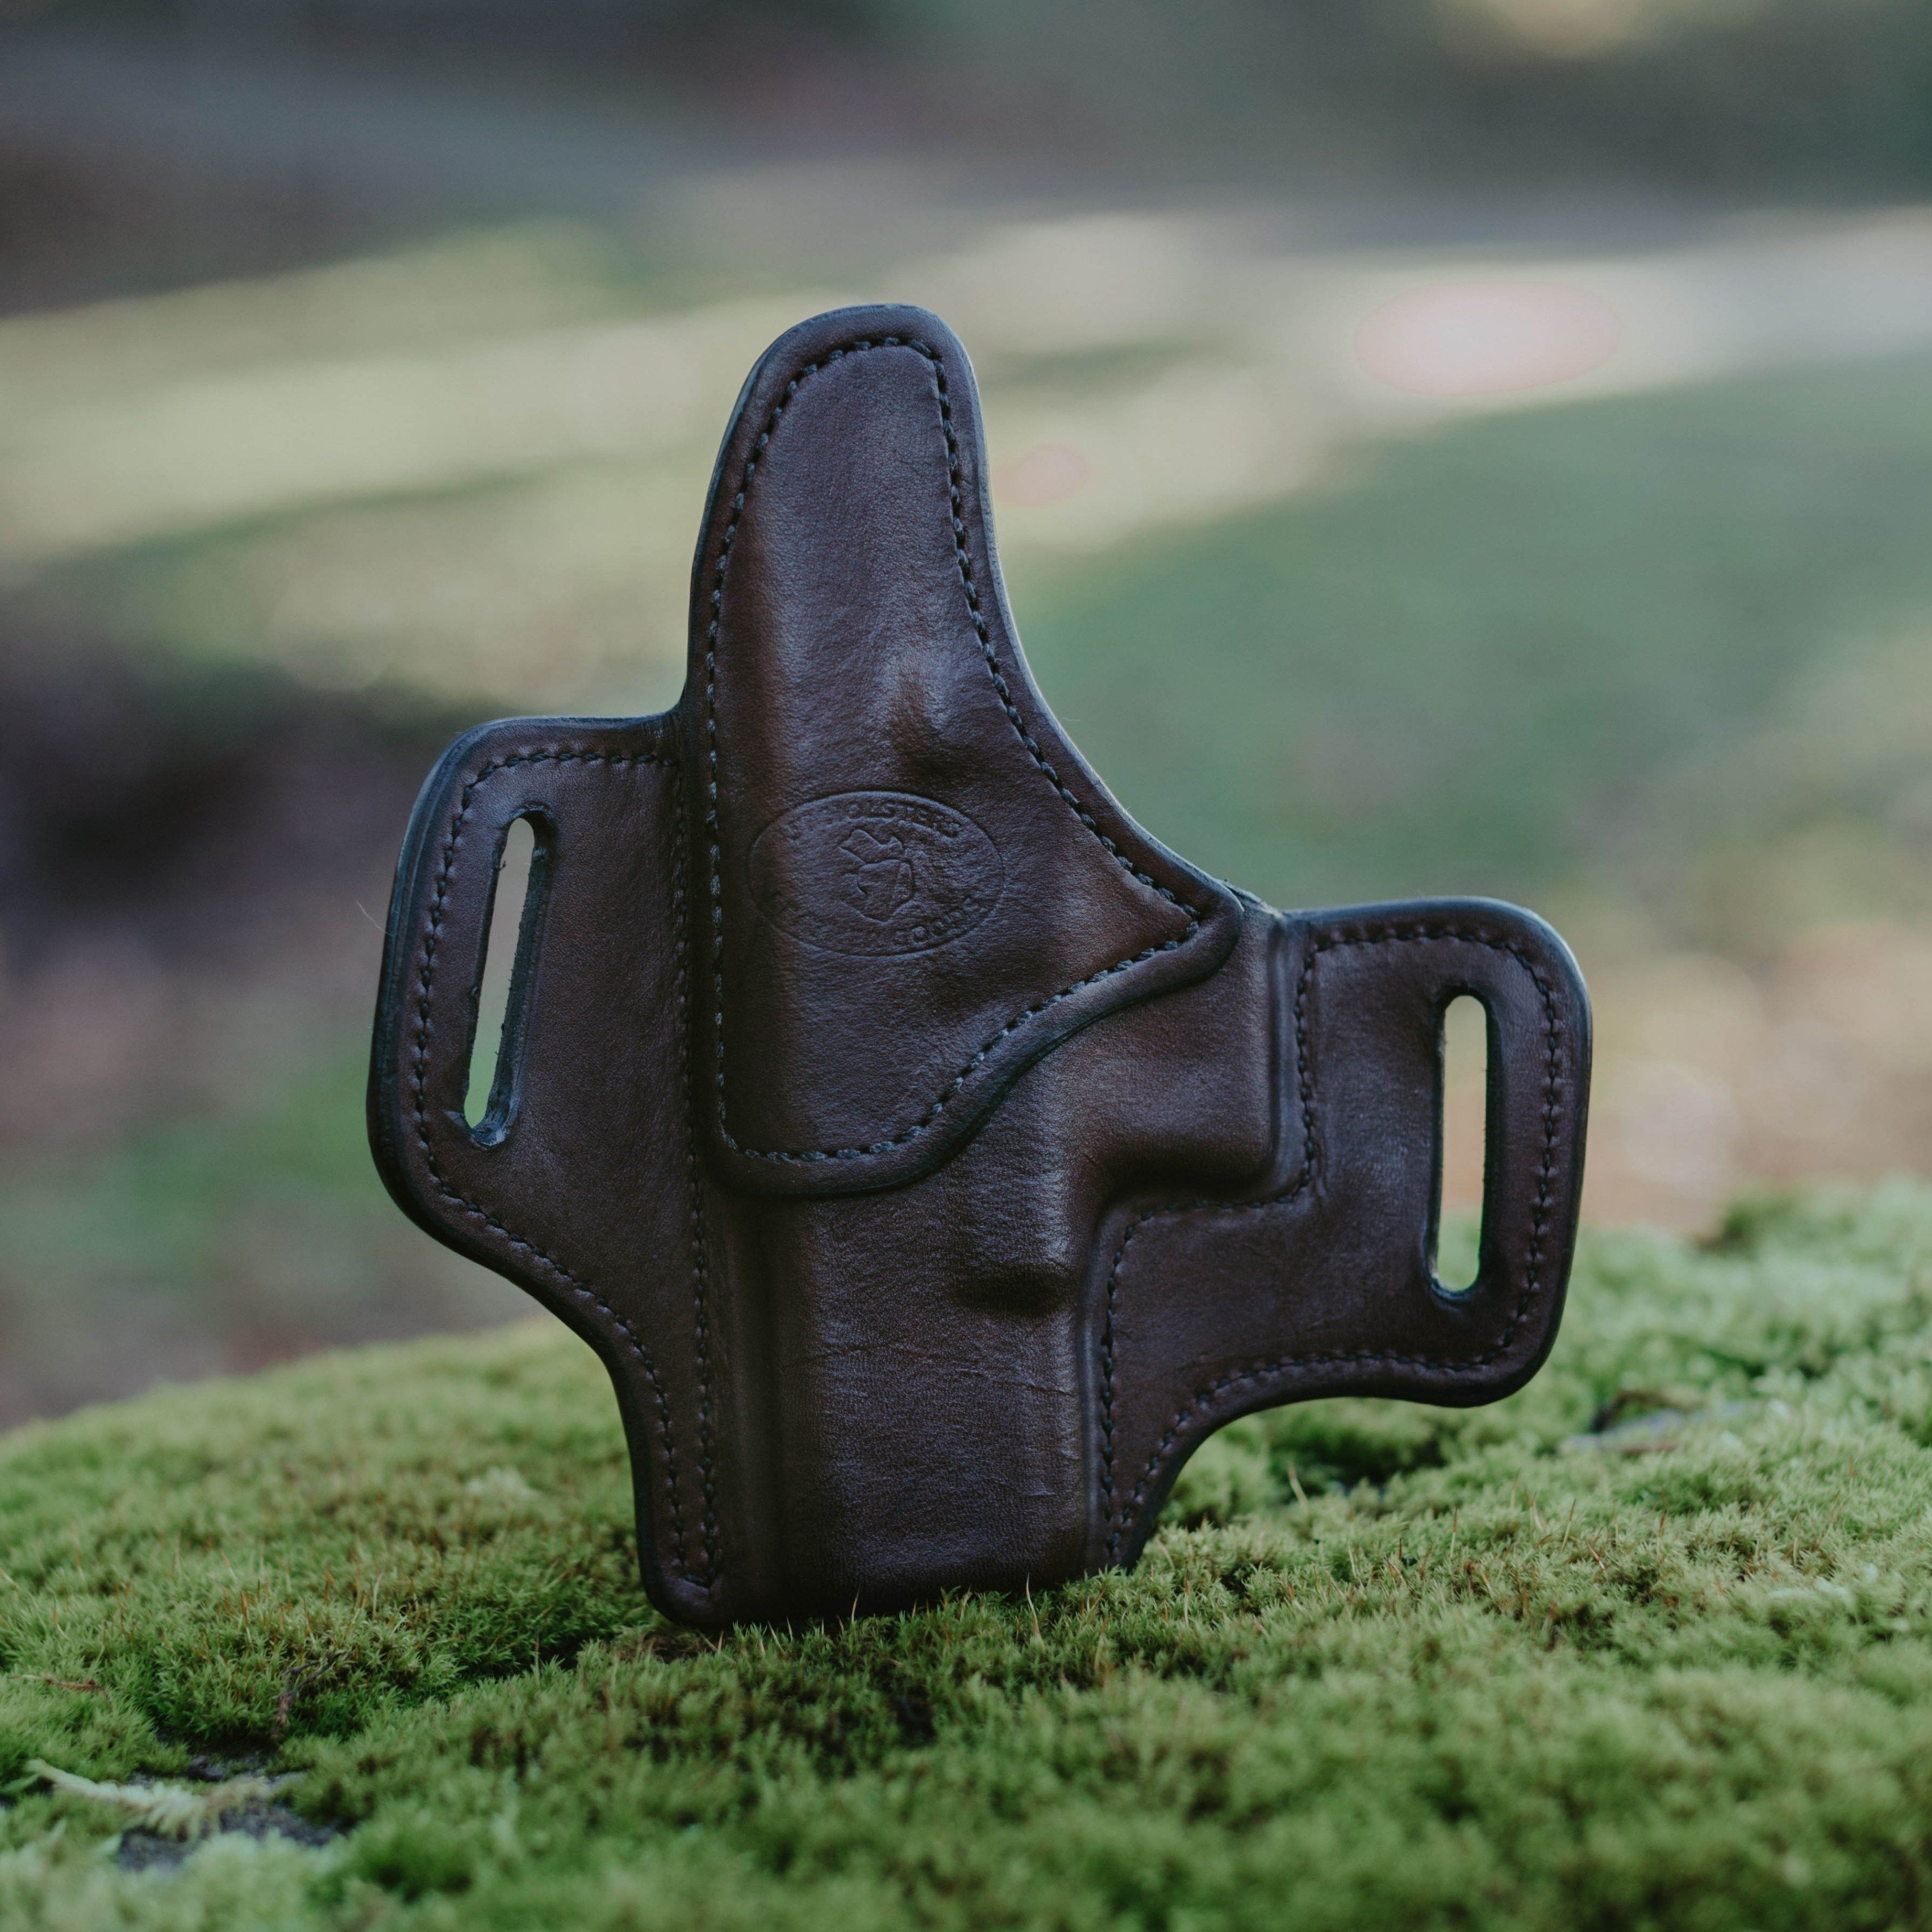 The Tillamook | Leather Holsters | Pancake holster, Leather